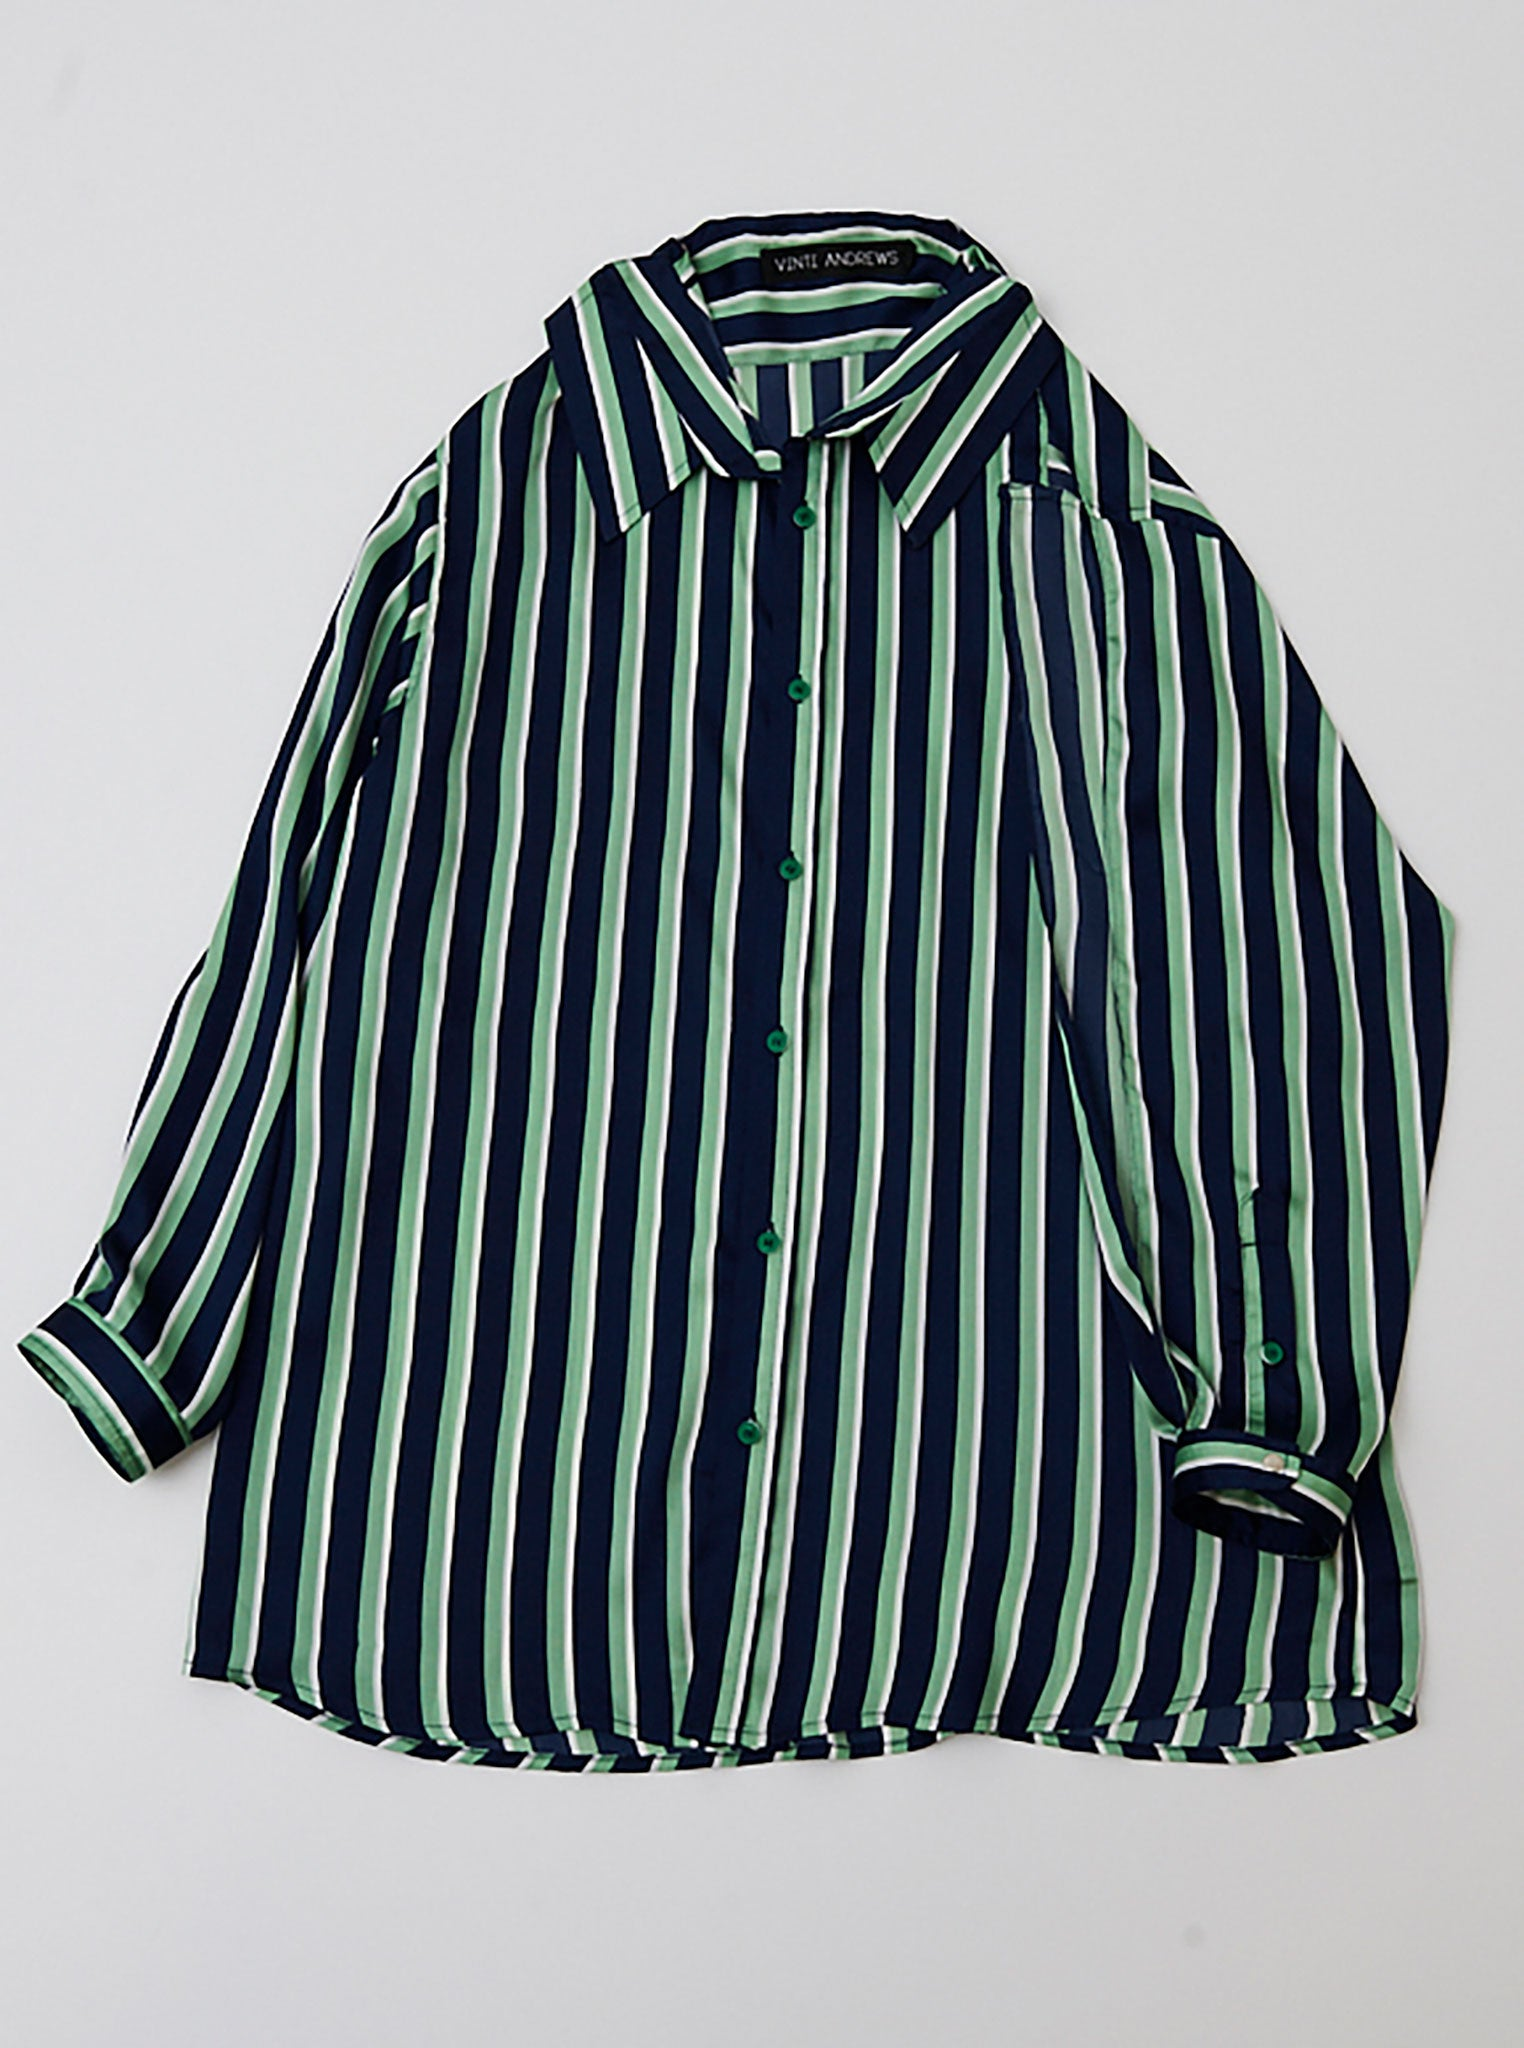 Vinti Andrews Satin Stripes Poppers on Shoulders Shirt